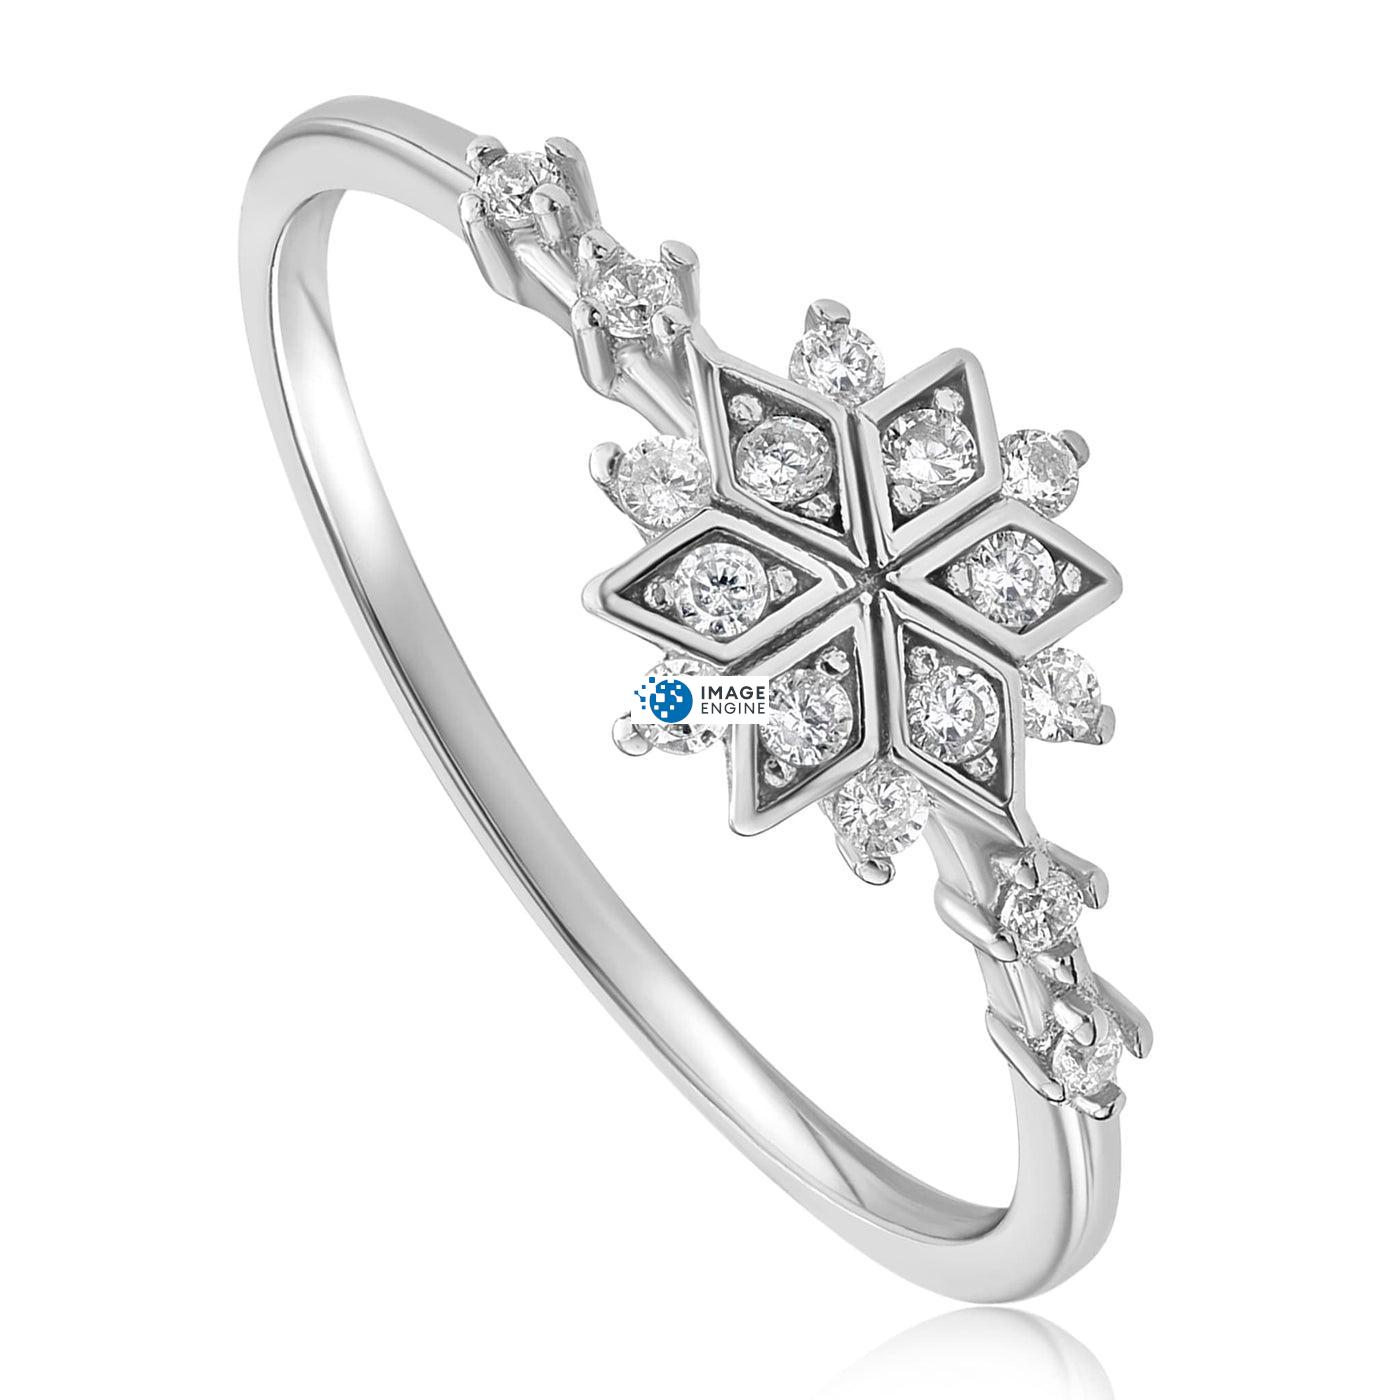 Sophia Snowflake Ring - Three Quarter View - 925 Sterling Silver